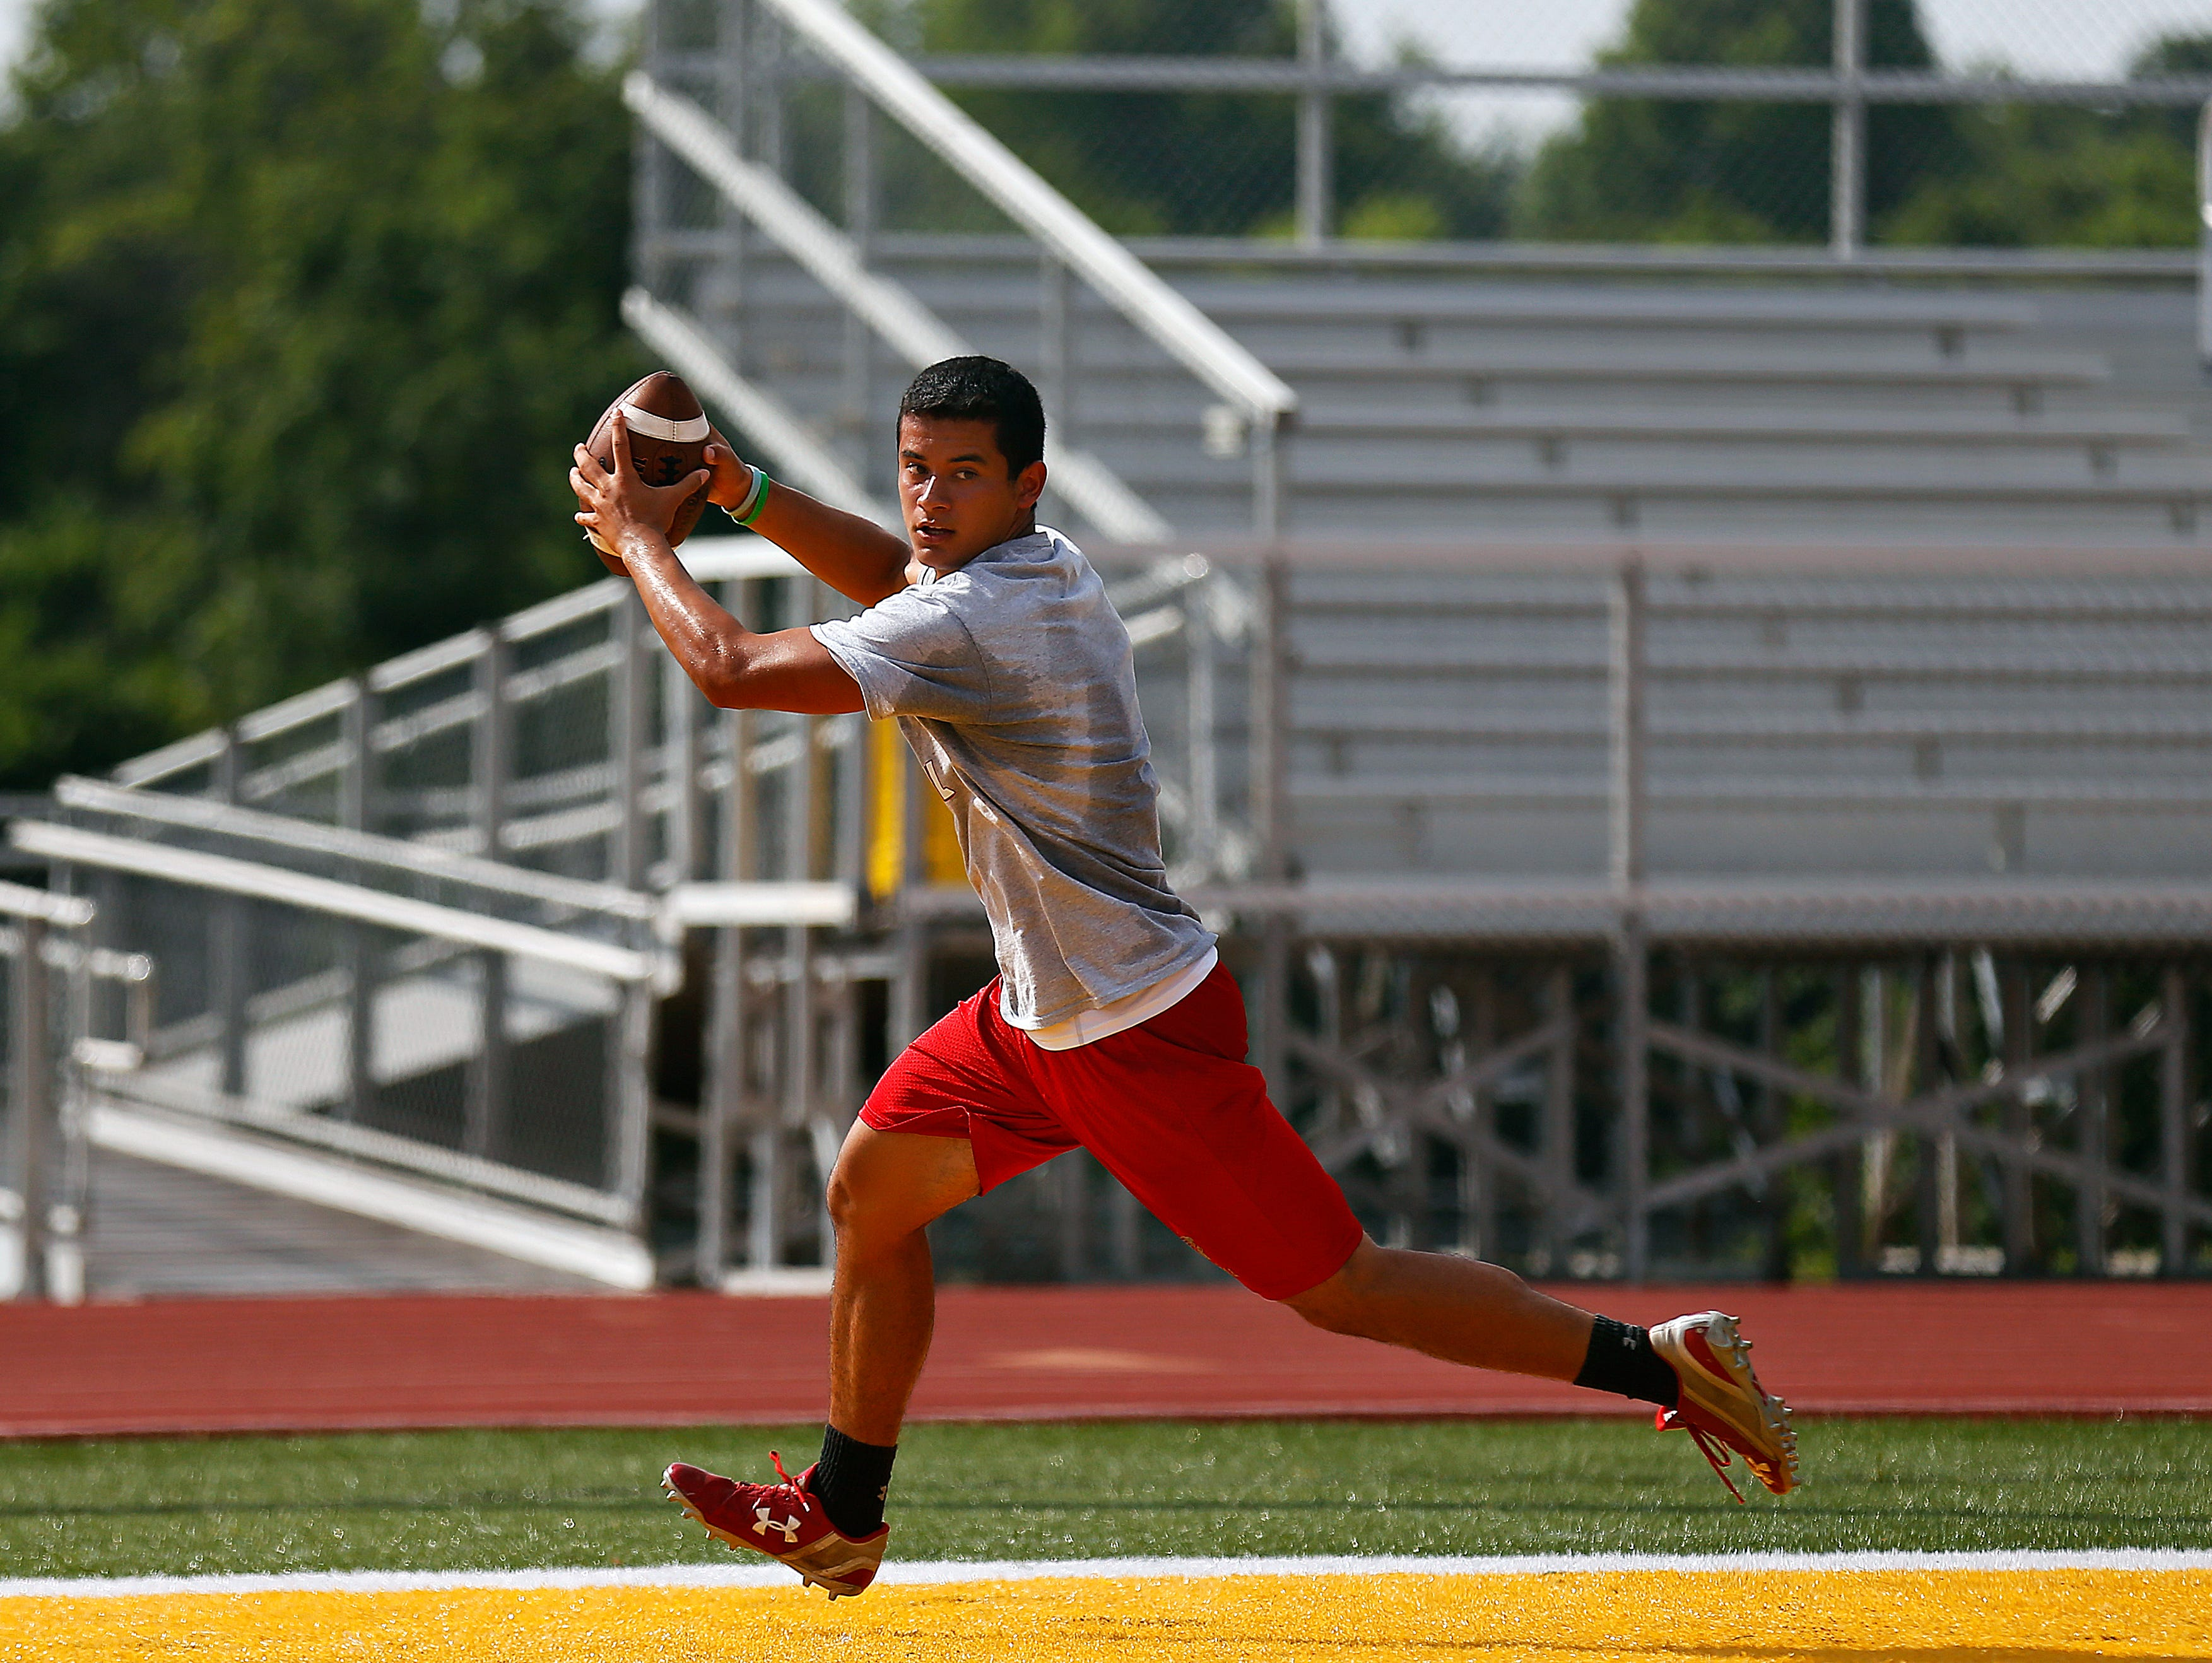 Nixa High School wide receiver Nicos Oropeza catches a touchdown pass as the Eagles play West Plains High School during the 2016 Parkview 7 on 7 Tournament held at JFK Stadium in Springfield, Mo. on June 16, 2016.